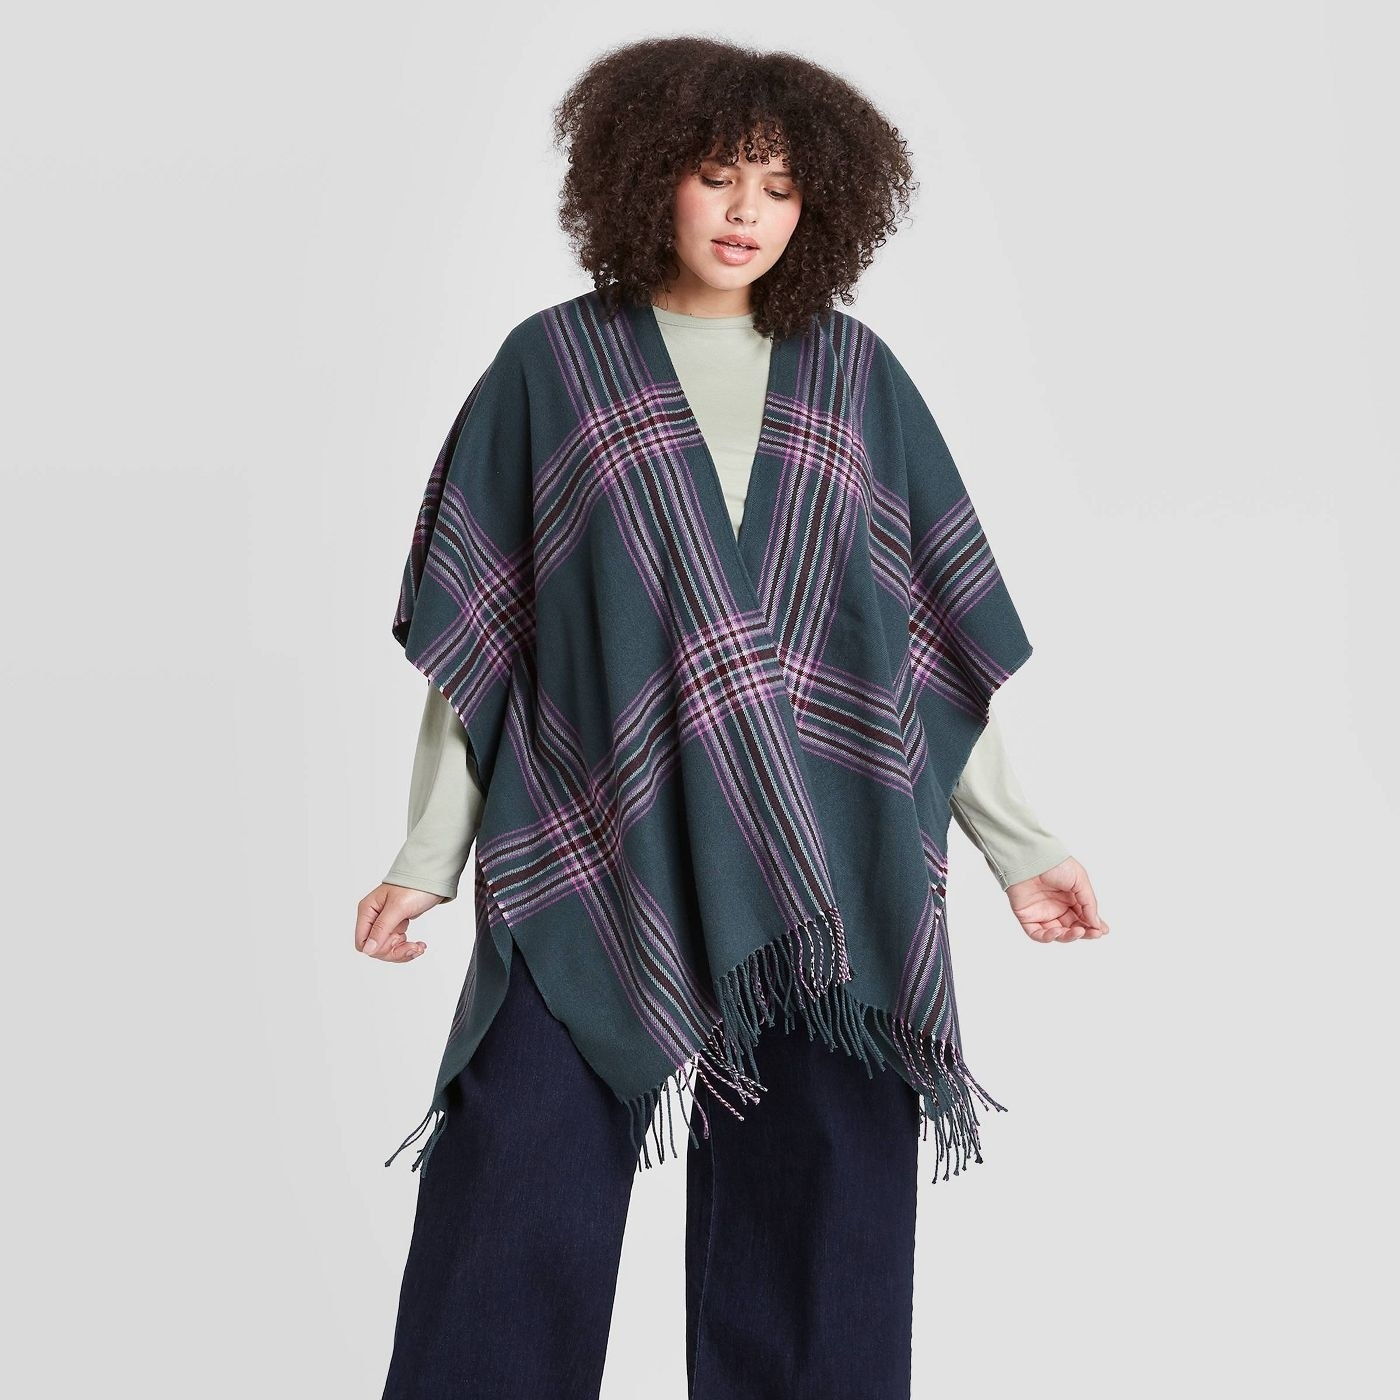 Model in the fringed scarf cape